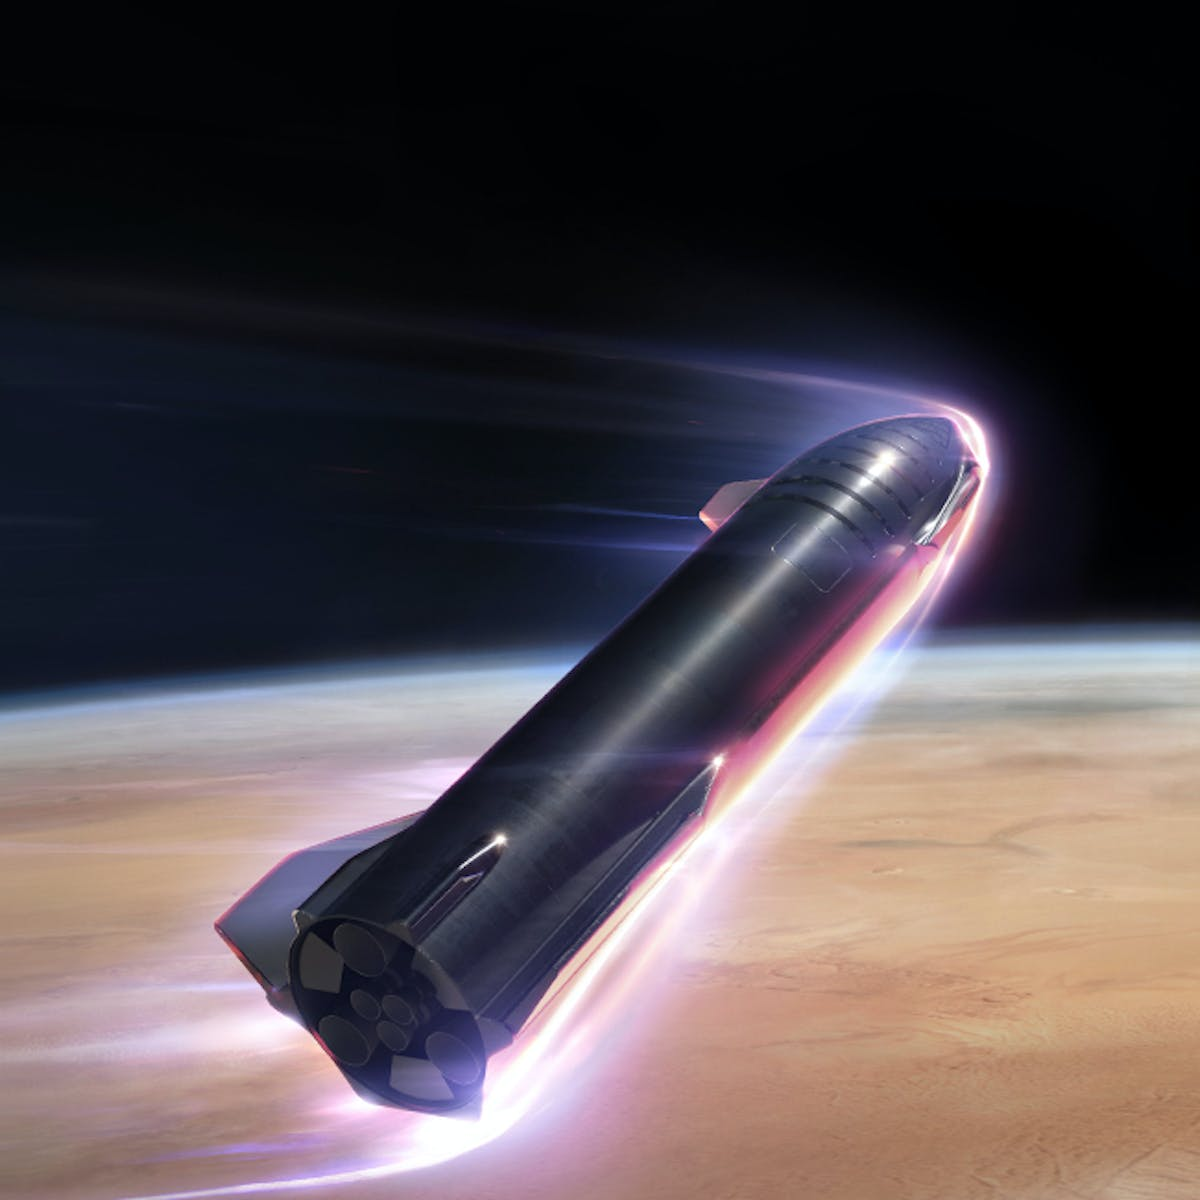 Elon Musk outlines an ultra-low price tag for SpaceX Starship launches